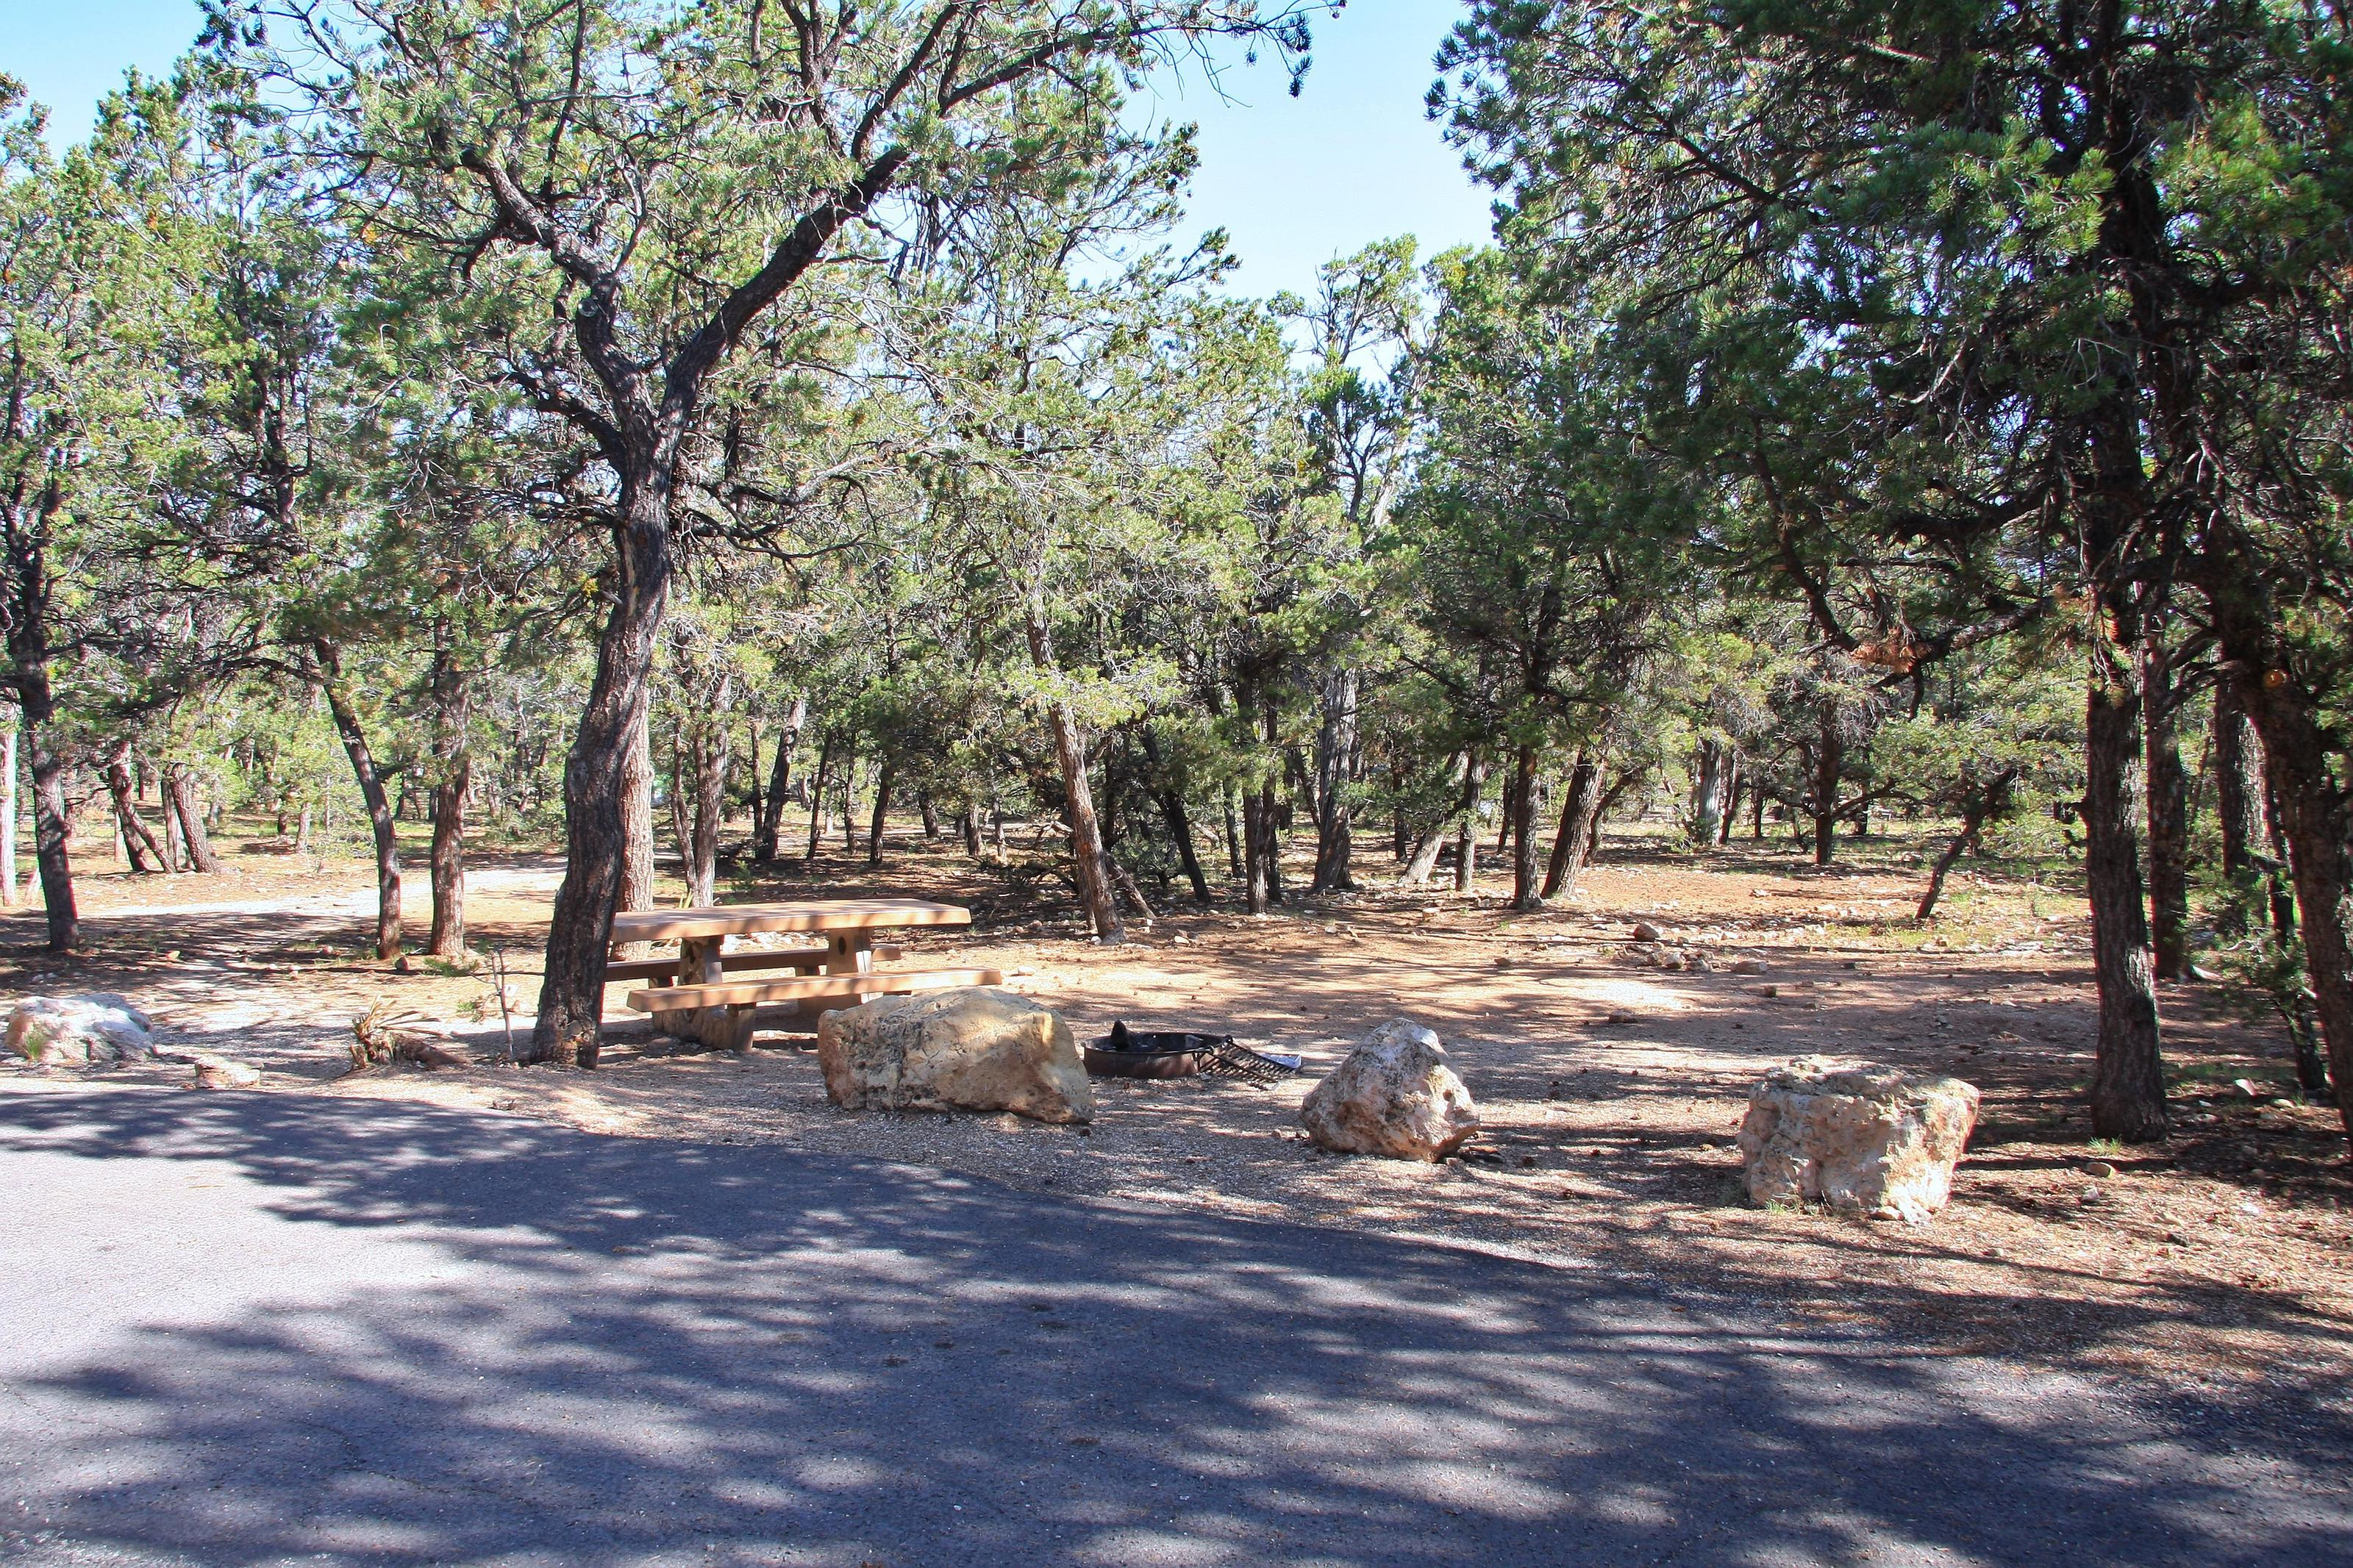 Picnic table, fire pit, and parking spot, Mather CampgroundPicnic table, fire pit, and parking spot for Maple Loop 193, Mather Campground